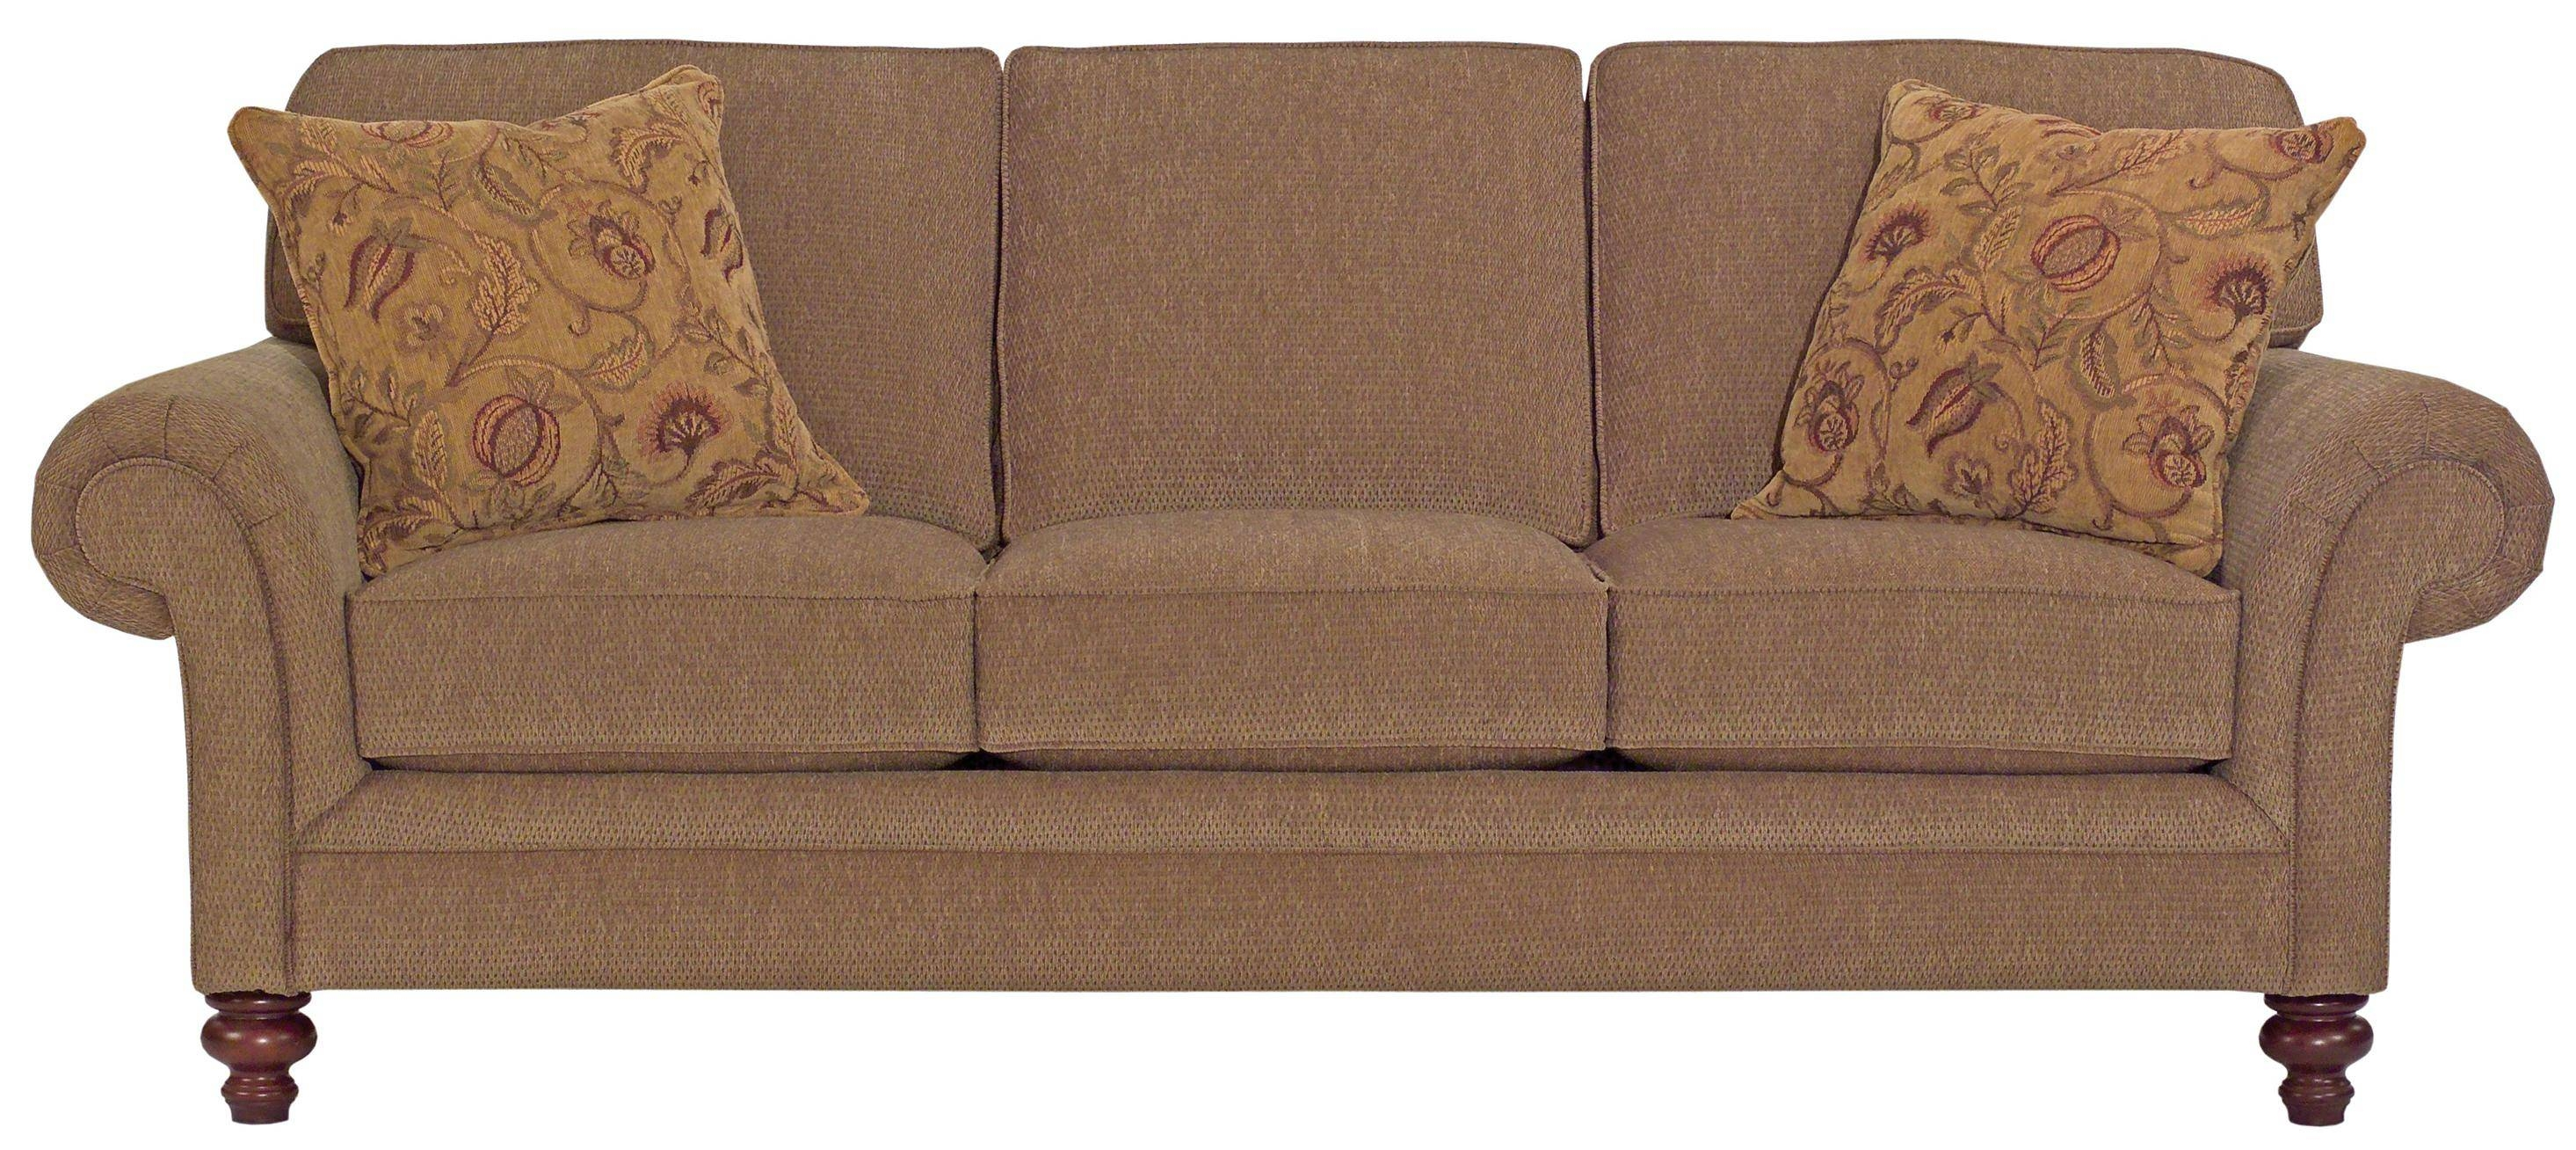 Broyhill Furniture Larissa Queen Goodnight Sleeper Sofa - Value with regard to Broyhill Larissa Sofas (Image 1 of 15)